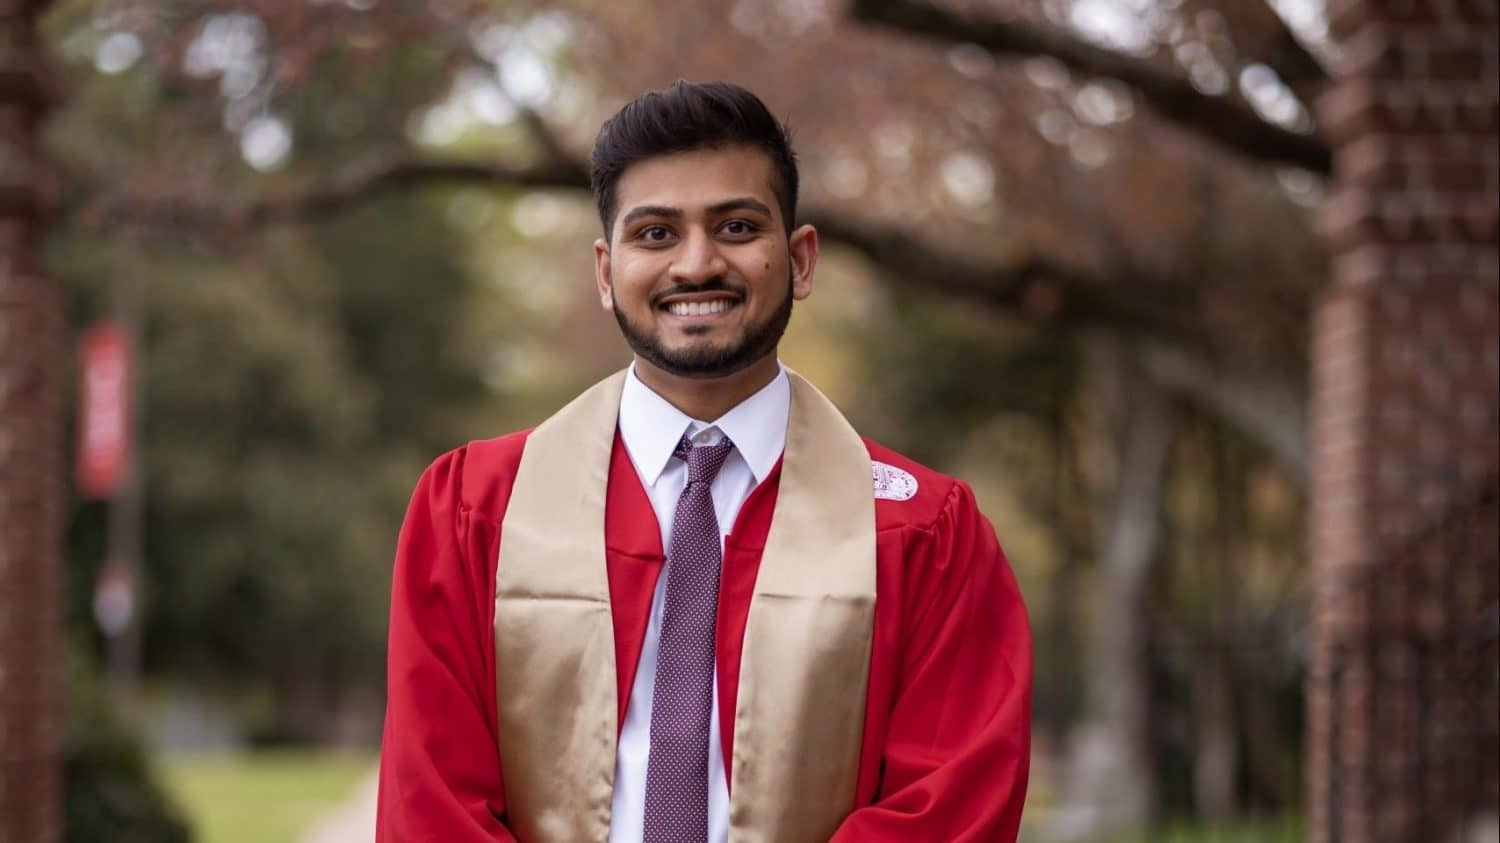 Dhuru Patel portrait in graduation gown